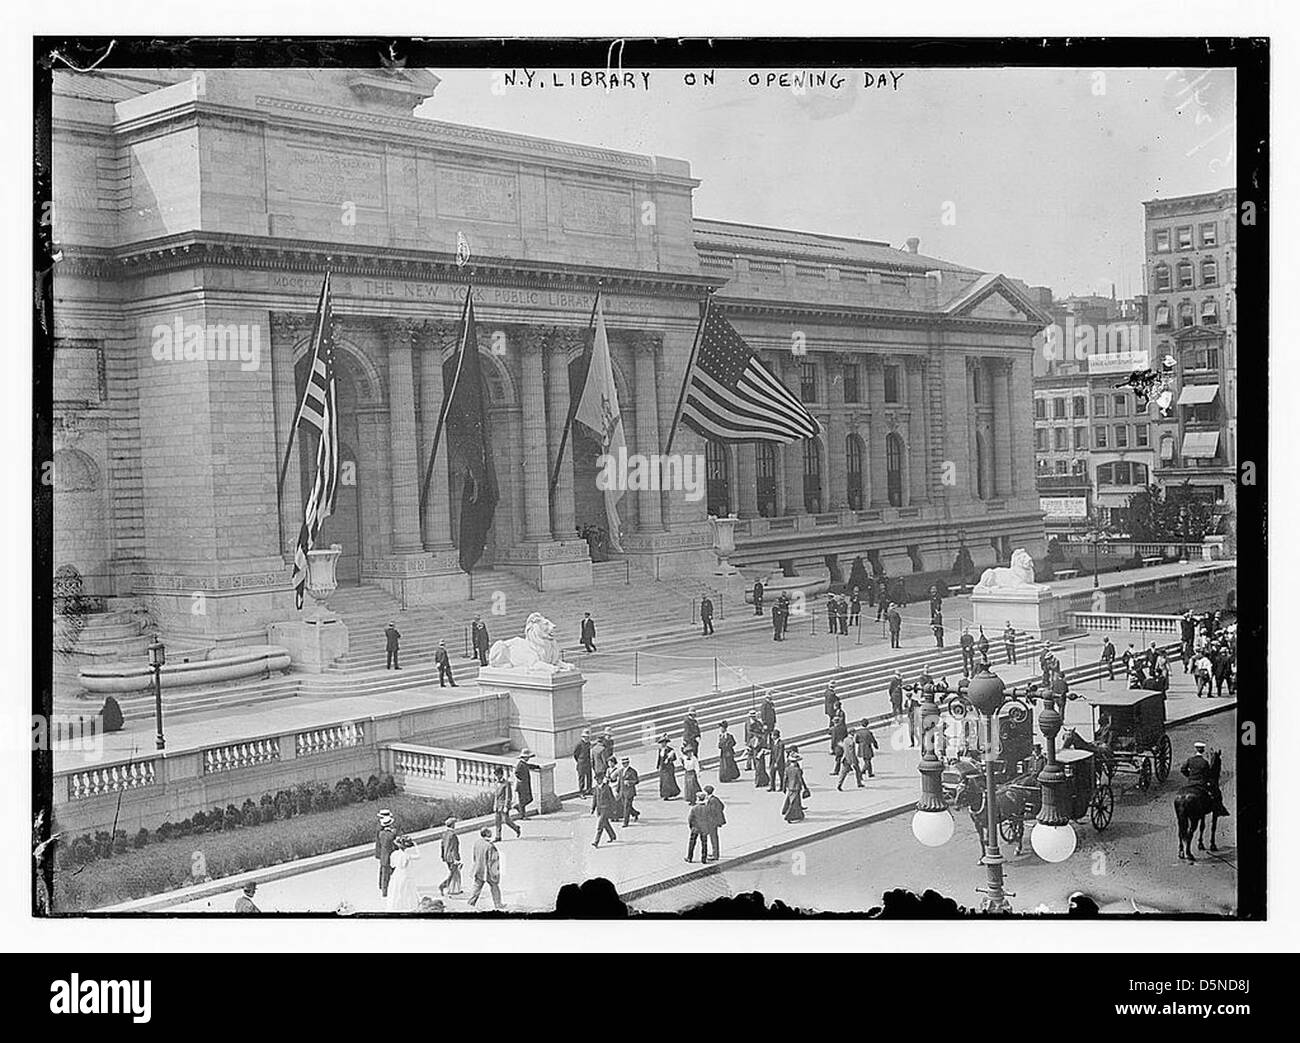 N.Y. Library on Opening Day (LOC) - Stock Image